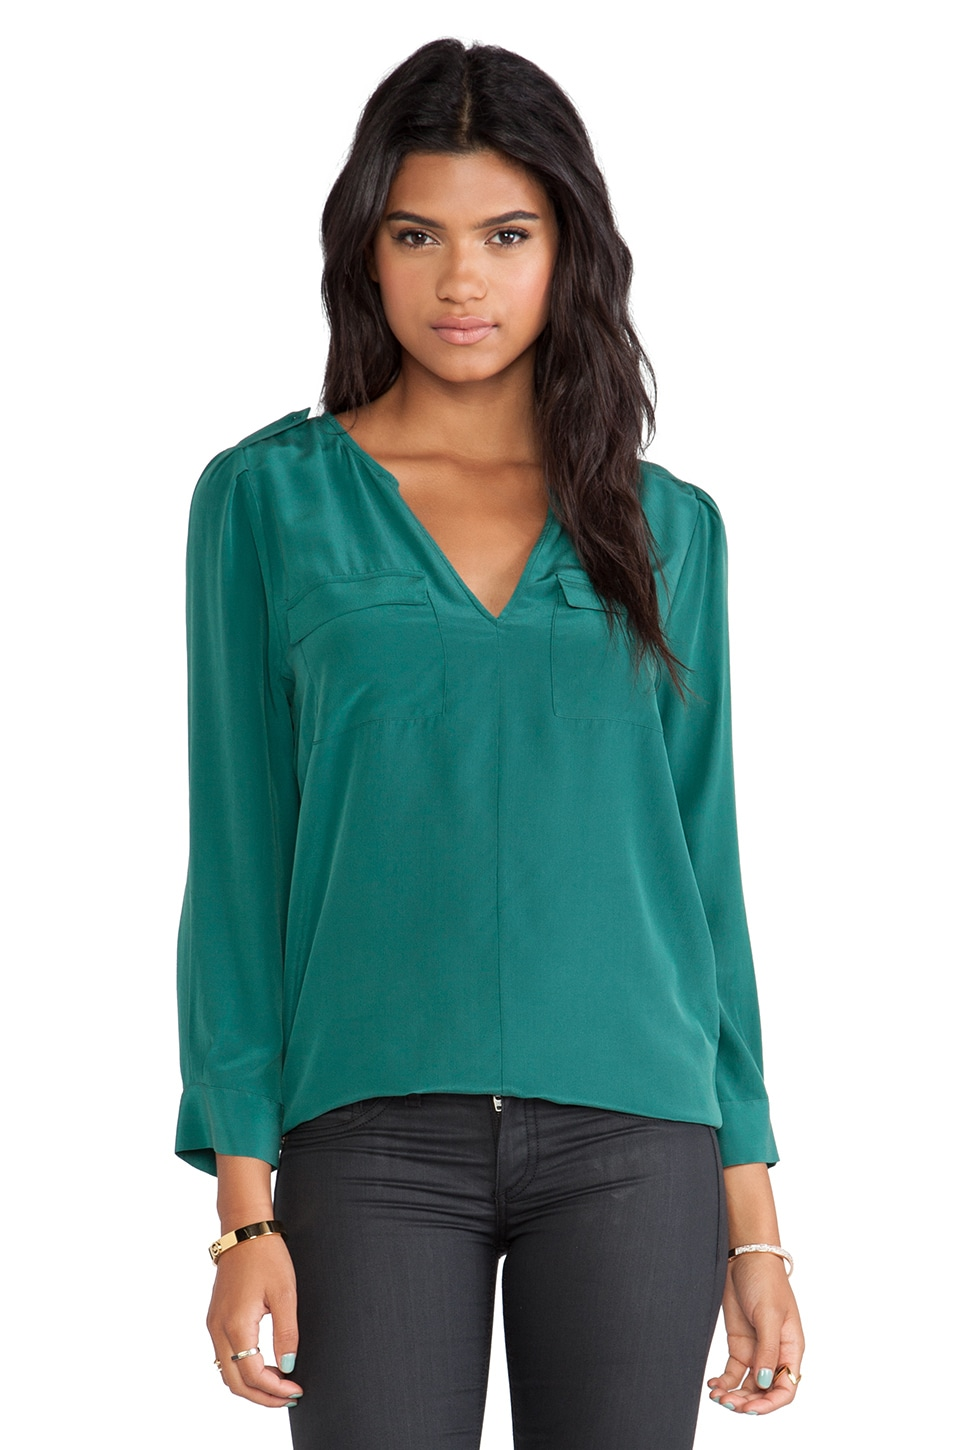 Joie Marlo Blouse in Hunter